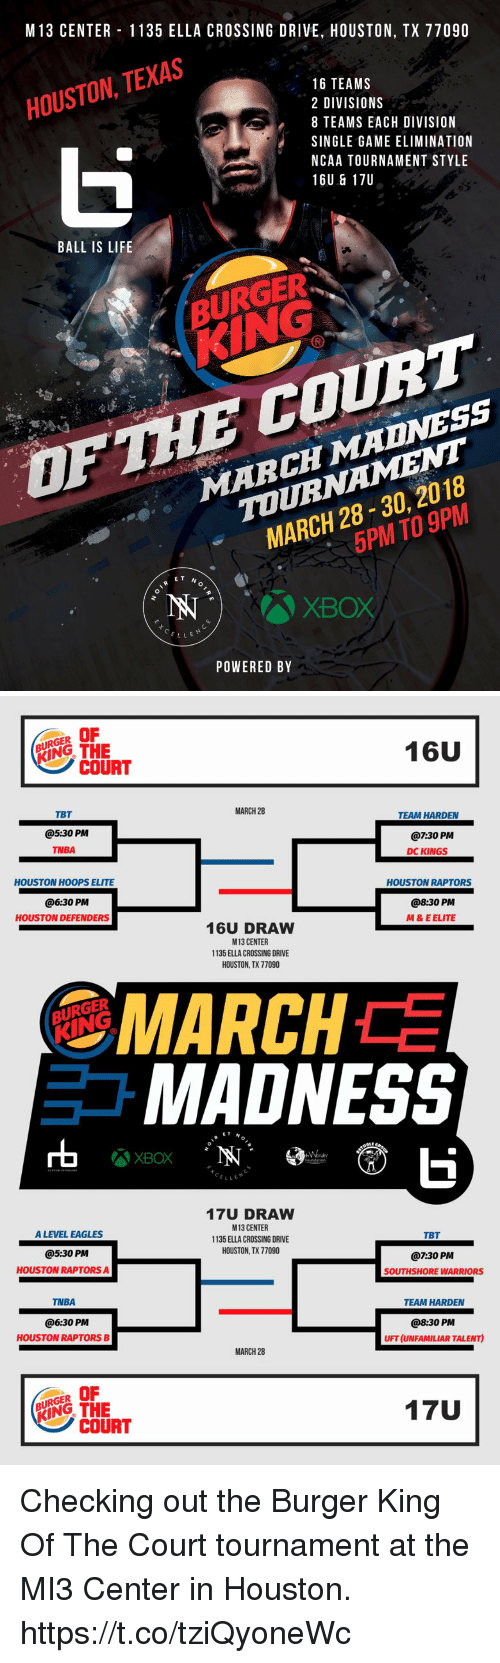 Ball Is Life, Burger King, and Philadelphia Eagles: M 13 CENTER 1135 ELLA CROSSING DRIVE, HOUSTON, TX 77090  HOUSTON, TEXAS  16 TEAMS  2 DIVISIONS  8 TEAMS EACH DIVISION  SINGLE GAME ELIMINATIOM  NCAA TOURNAMENT STYLE  16U & 17U  BALL IS LIFE  KING  MARCH MADNESS  TOURNAMENT  MARCH 28-30, 2018  OFTHE COURT  5PM TO 9PM  ET N  IN  XBOX  CELLE  POWERED BY   OF  BURGER  RYİNG THE  16U  COURT  MARCH 28  TBT  @5:30 PM  TNBA  TEAM HARDEN  @7:30 PM  DC KINGS  HOUSTON HOOPS ELITE  HOUSTON RAPTORS  @6:30 PM  8:30 PM  HOUSTON DEFENDERS  M& E ELITE  16U DRAW  M13 CENTER  1135 ELLA CROSSING DRIVE  HOUSTON, TX 77090  MARCH  MADNESS  BURGER  rt  XBOX  CELL  17U DRAW  M13 CENTER  1135 ELLA CROSSING DRIVE  HOUSTON, TX 77090  A LEVEL EAGLES  TBT  @5:30 PM  HOUSTON RAPTORS A  @7:30 PM  SOUTHSHORE WARRIORS  TNBA  TEAM HARDEN  @6:30 PM  HOUSTON RAPTORS B  @8:30 PM  UFT (UNFAMILIAR TALENT)  MARCH 28  17U  BURGER  KING THE  COURT Checking out the Burger King Of The Court tournament at the MI3 Center in Houston. https://t.co/tziQyoneWc